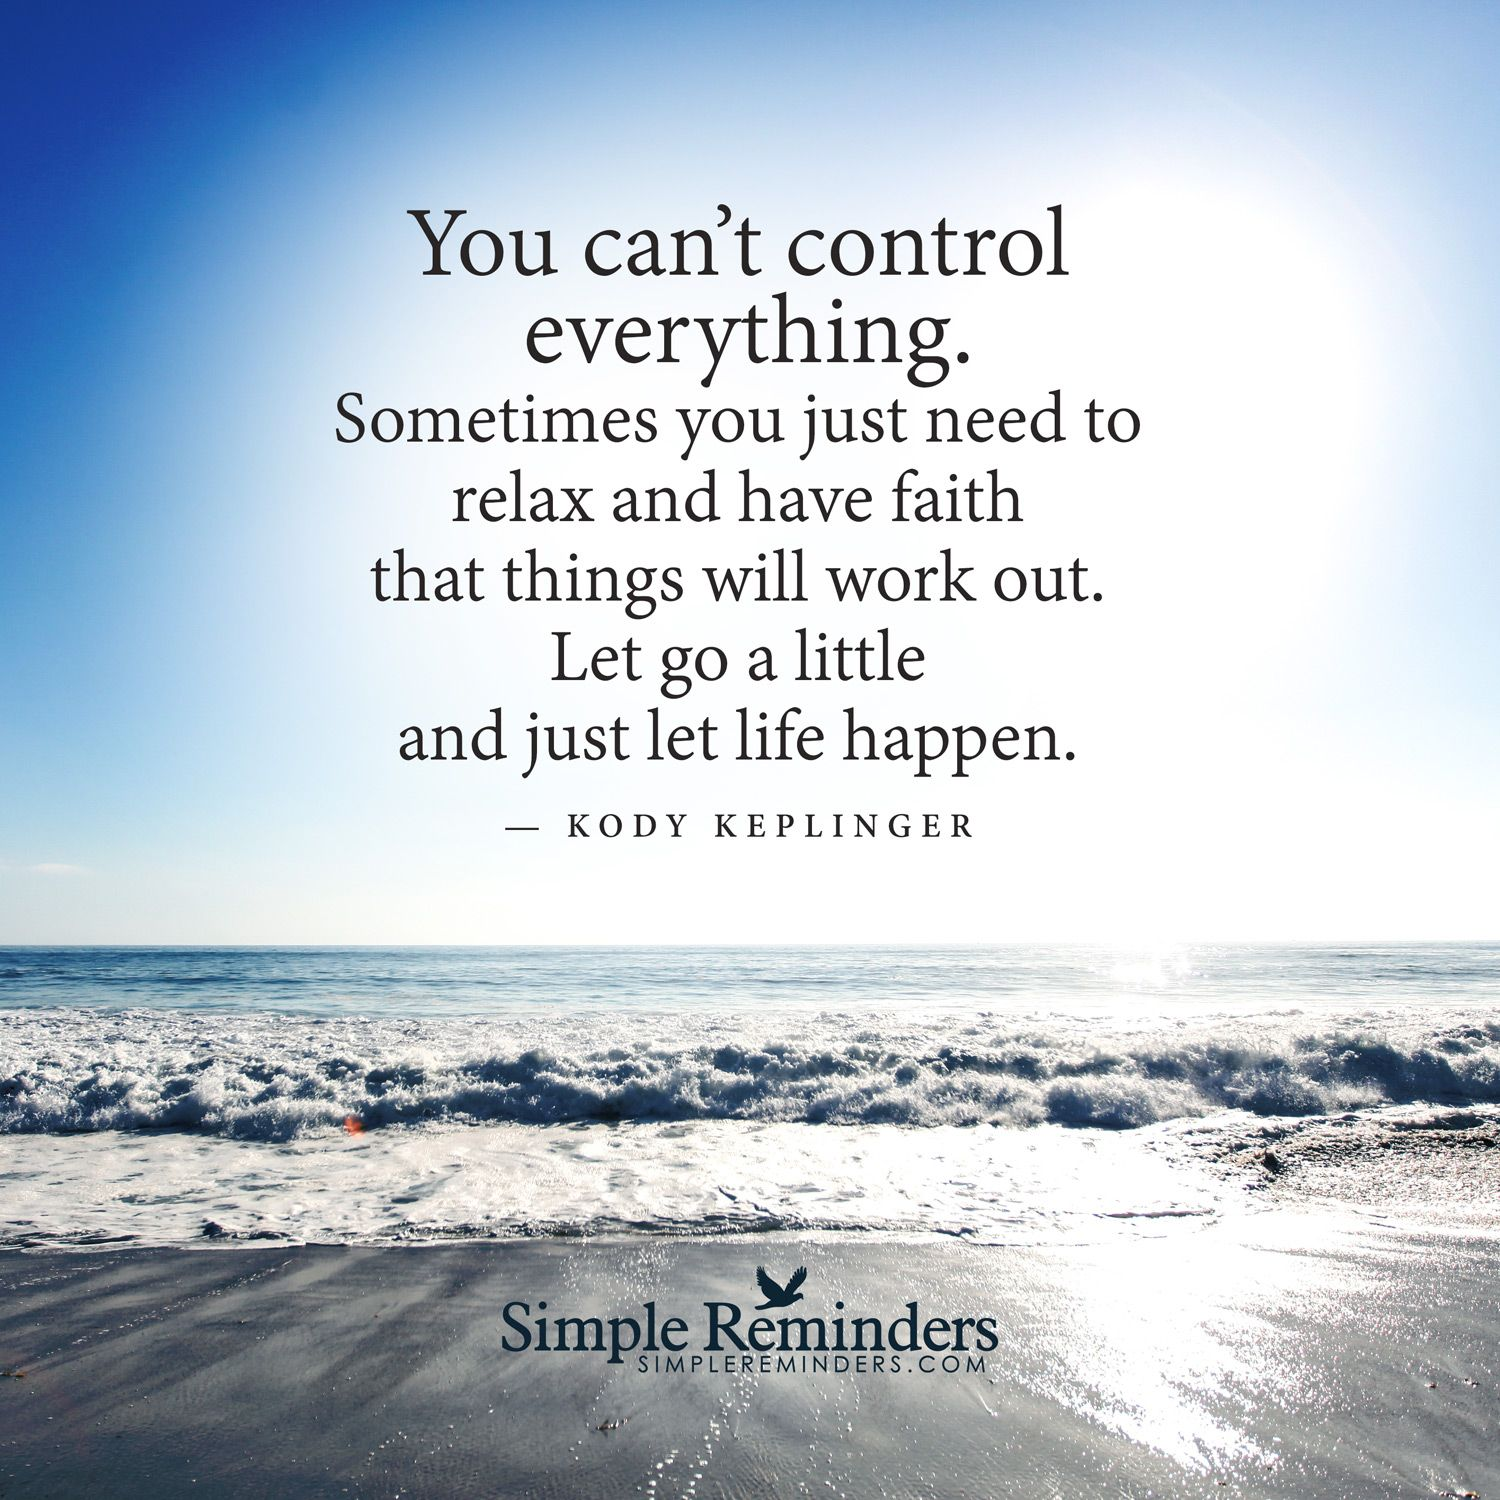 Inspirational Life Quotes And Sayings You Can T Control: You Cannot Control Everything By Kody Keplinger